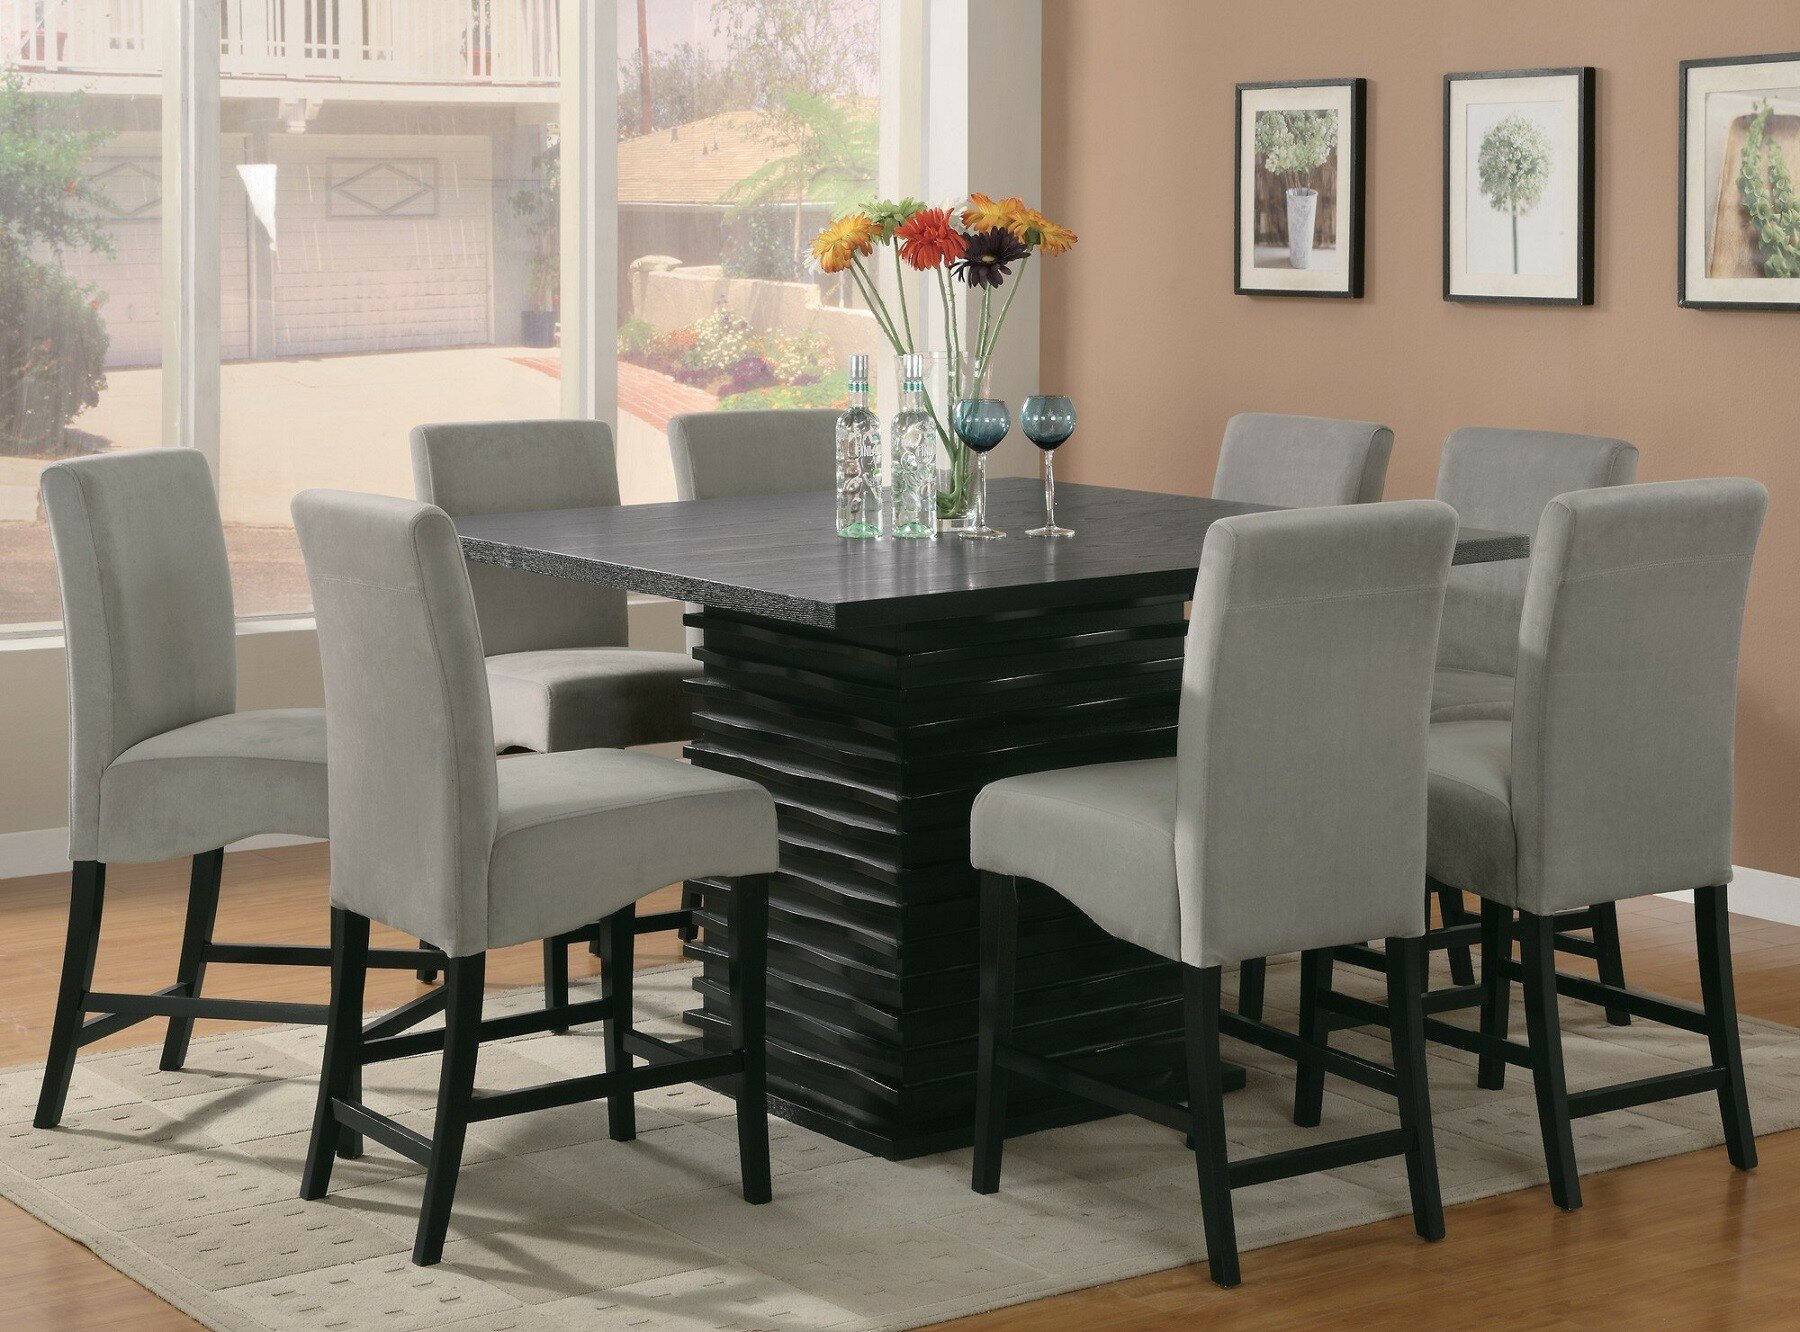 12 Piece Dining Room Set